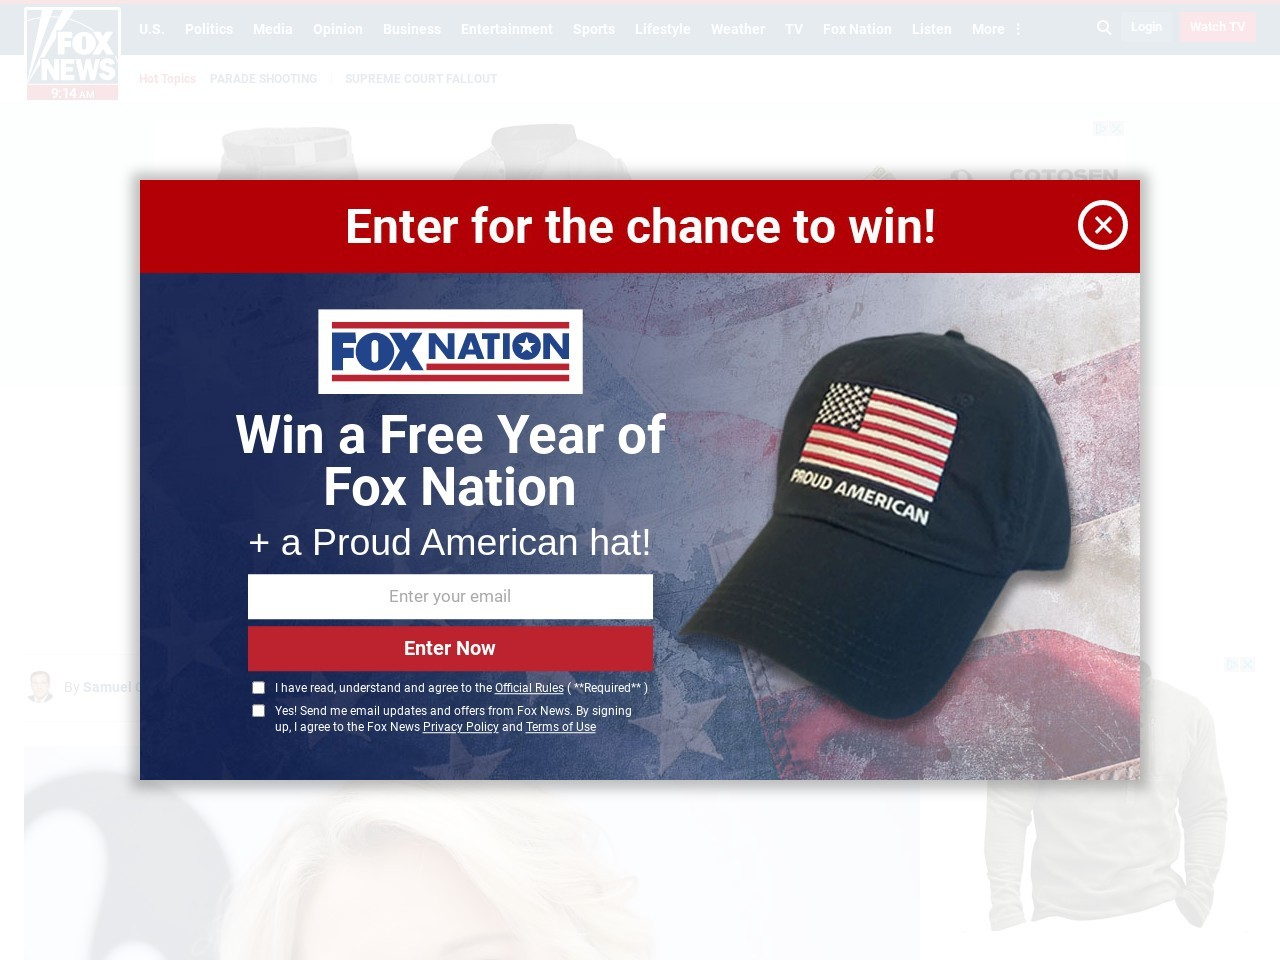 Megyn Kelly confronts Alex Jones over Sandy Hook, warns he 'isn't going away' – Megyn Kelly asked Putin about 'personal toll' of leading Russia, secret tapes show